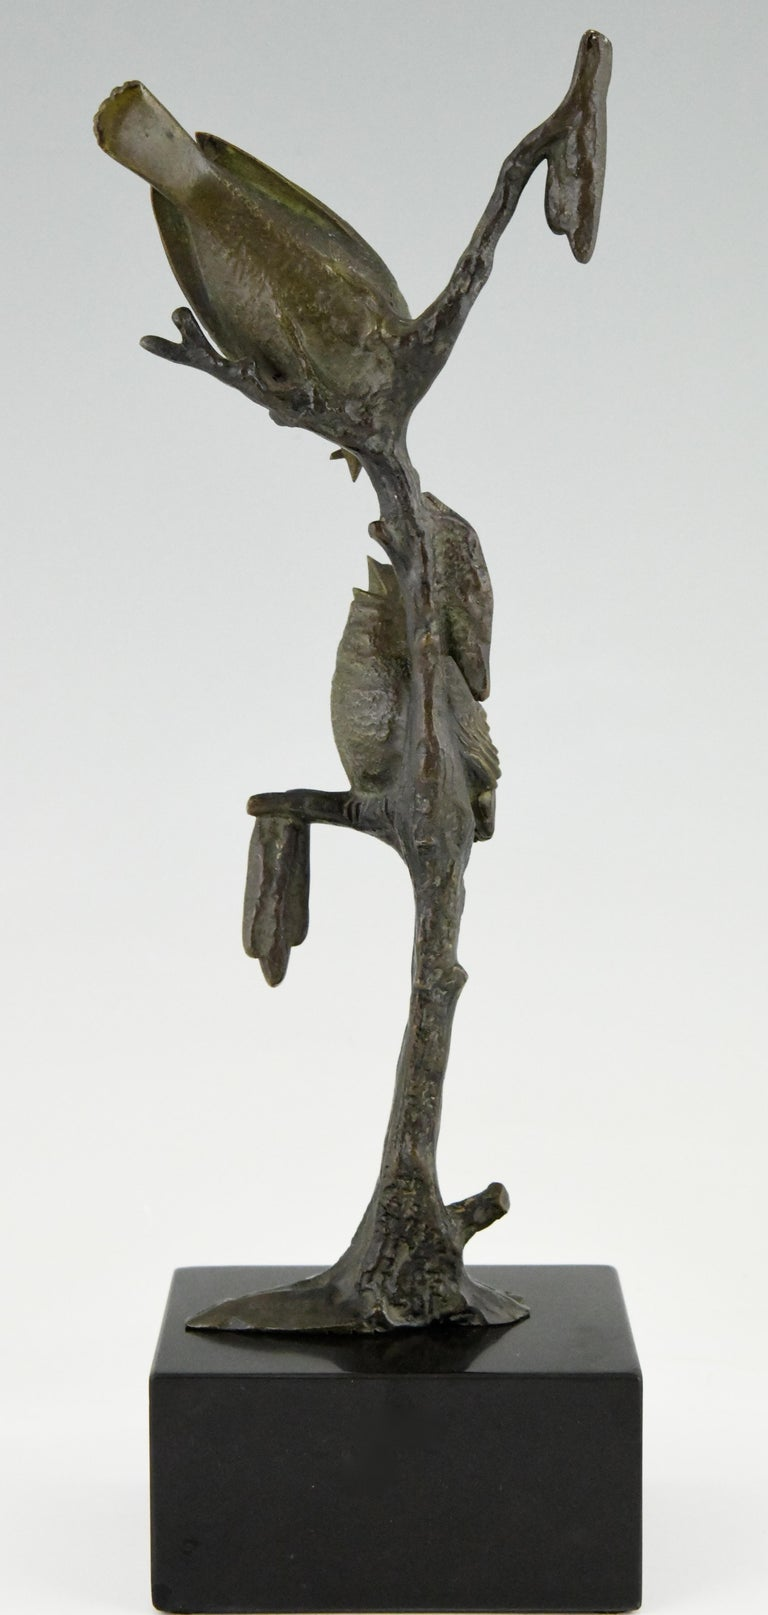 Mid-20th Century Art Deco Bronze Sculpture Two Birds on an Branch Irenee Rochard, France, 1930 For Sale